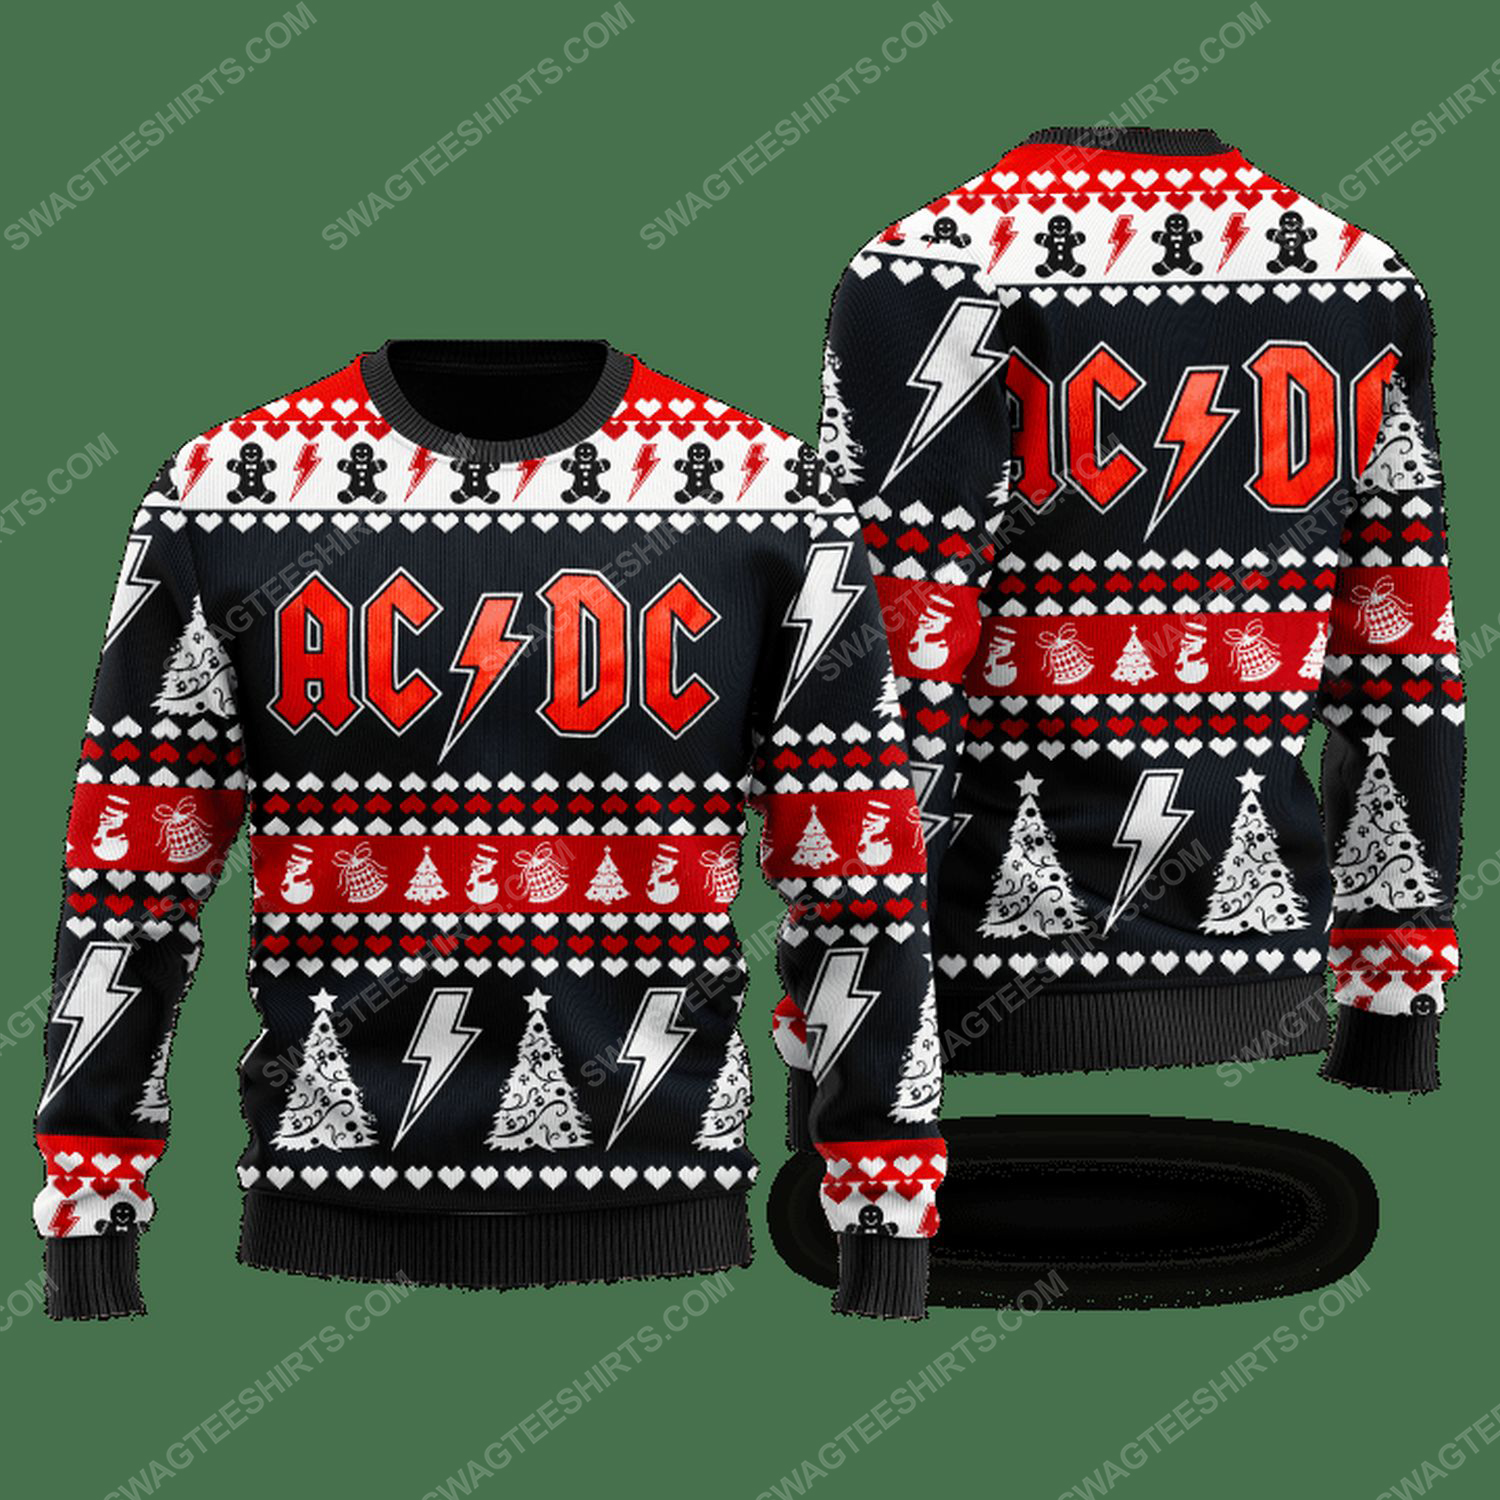 AC DC rock band ugly christmas sweater - Copy (2)